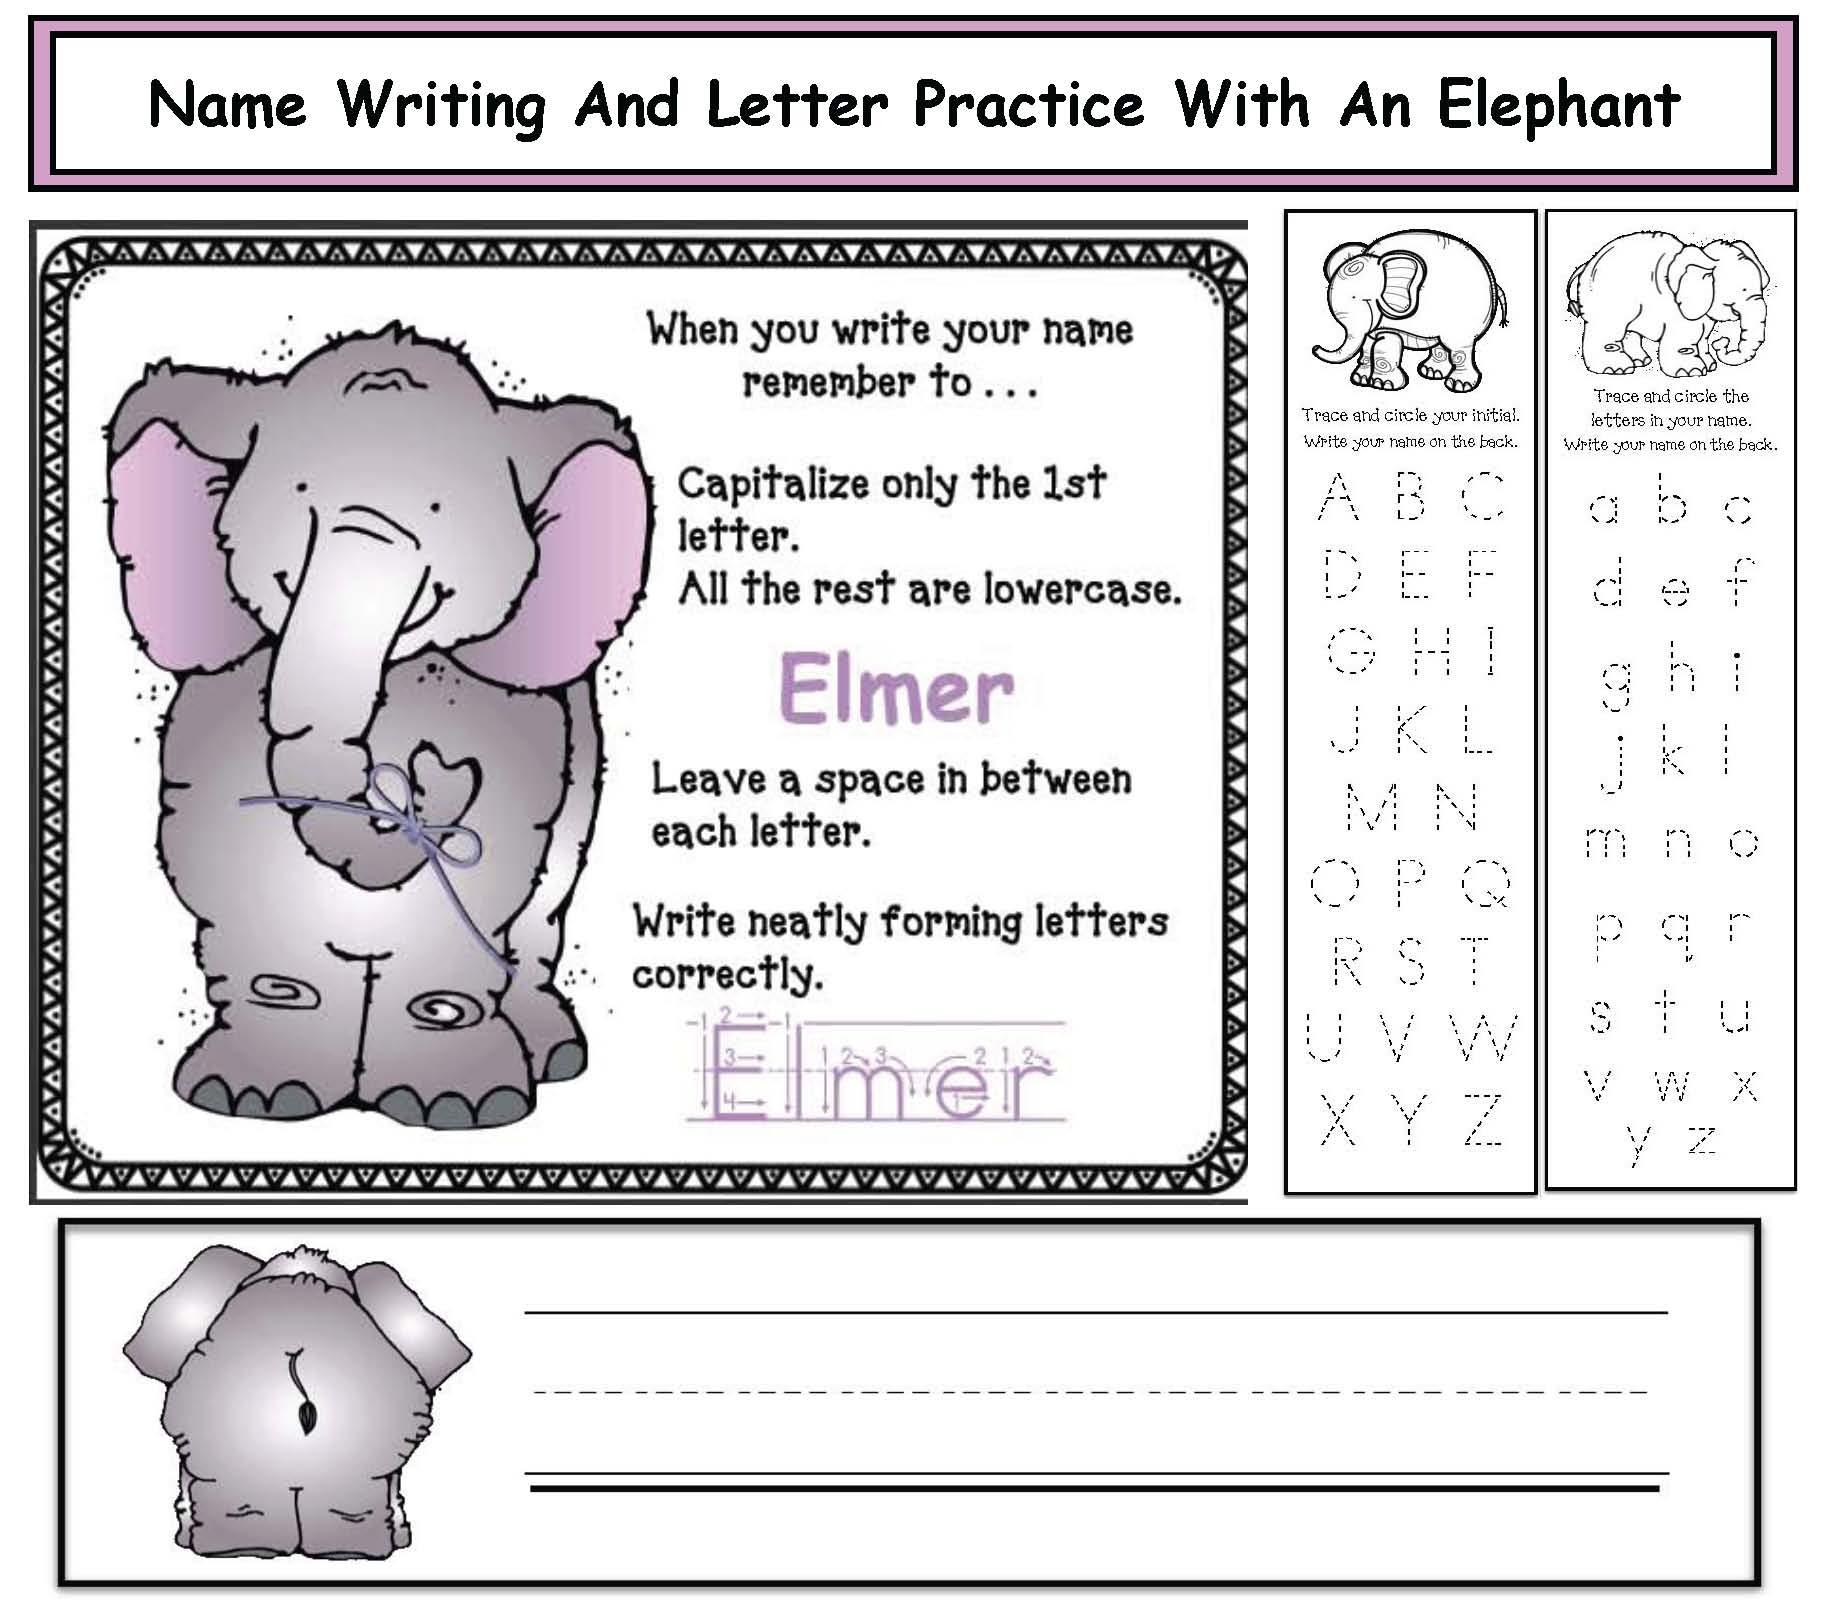 Elmer activities, name writing activities, elephant activities, name cards,